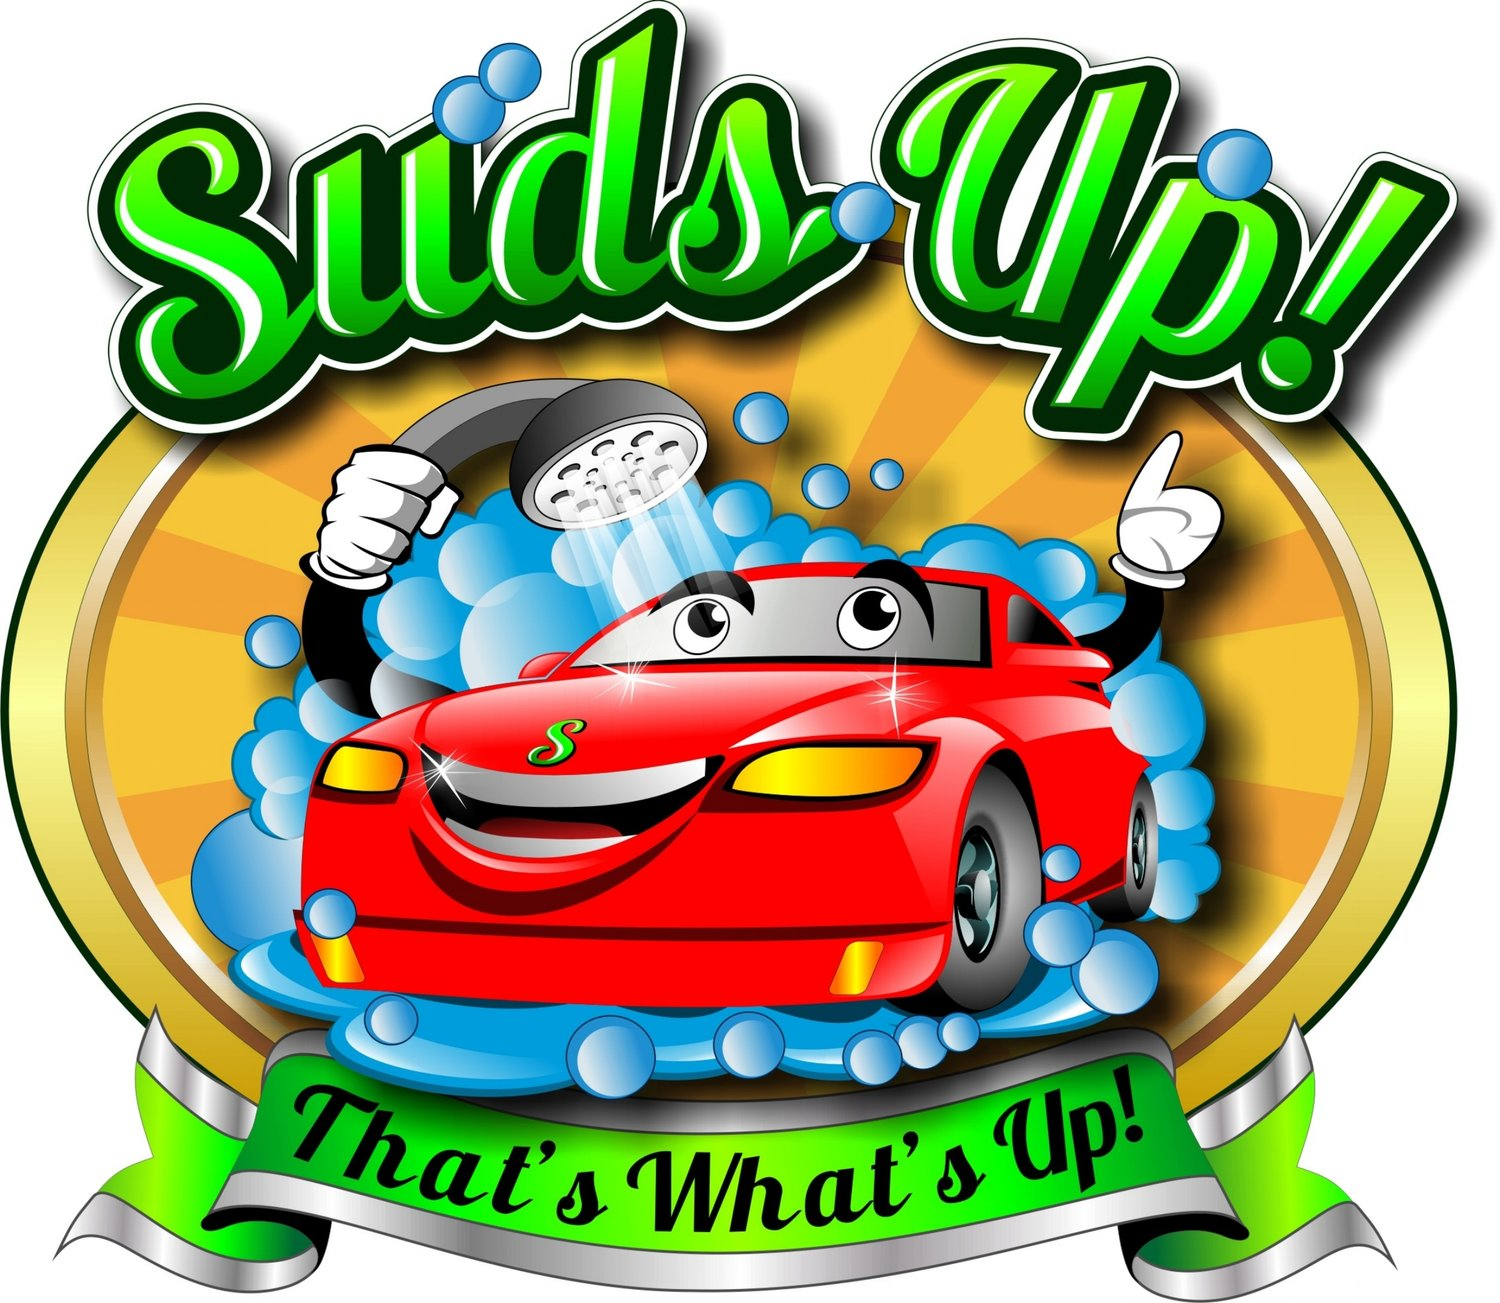 Suds Up Car Wash